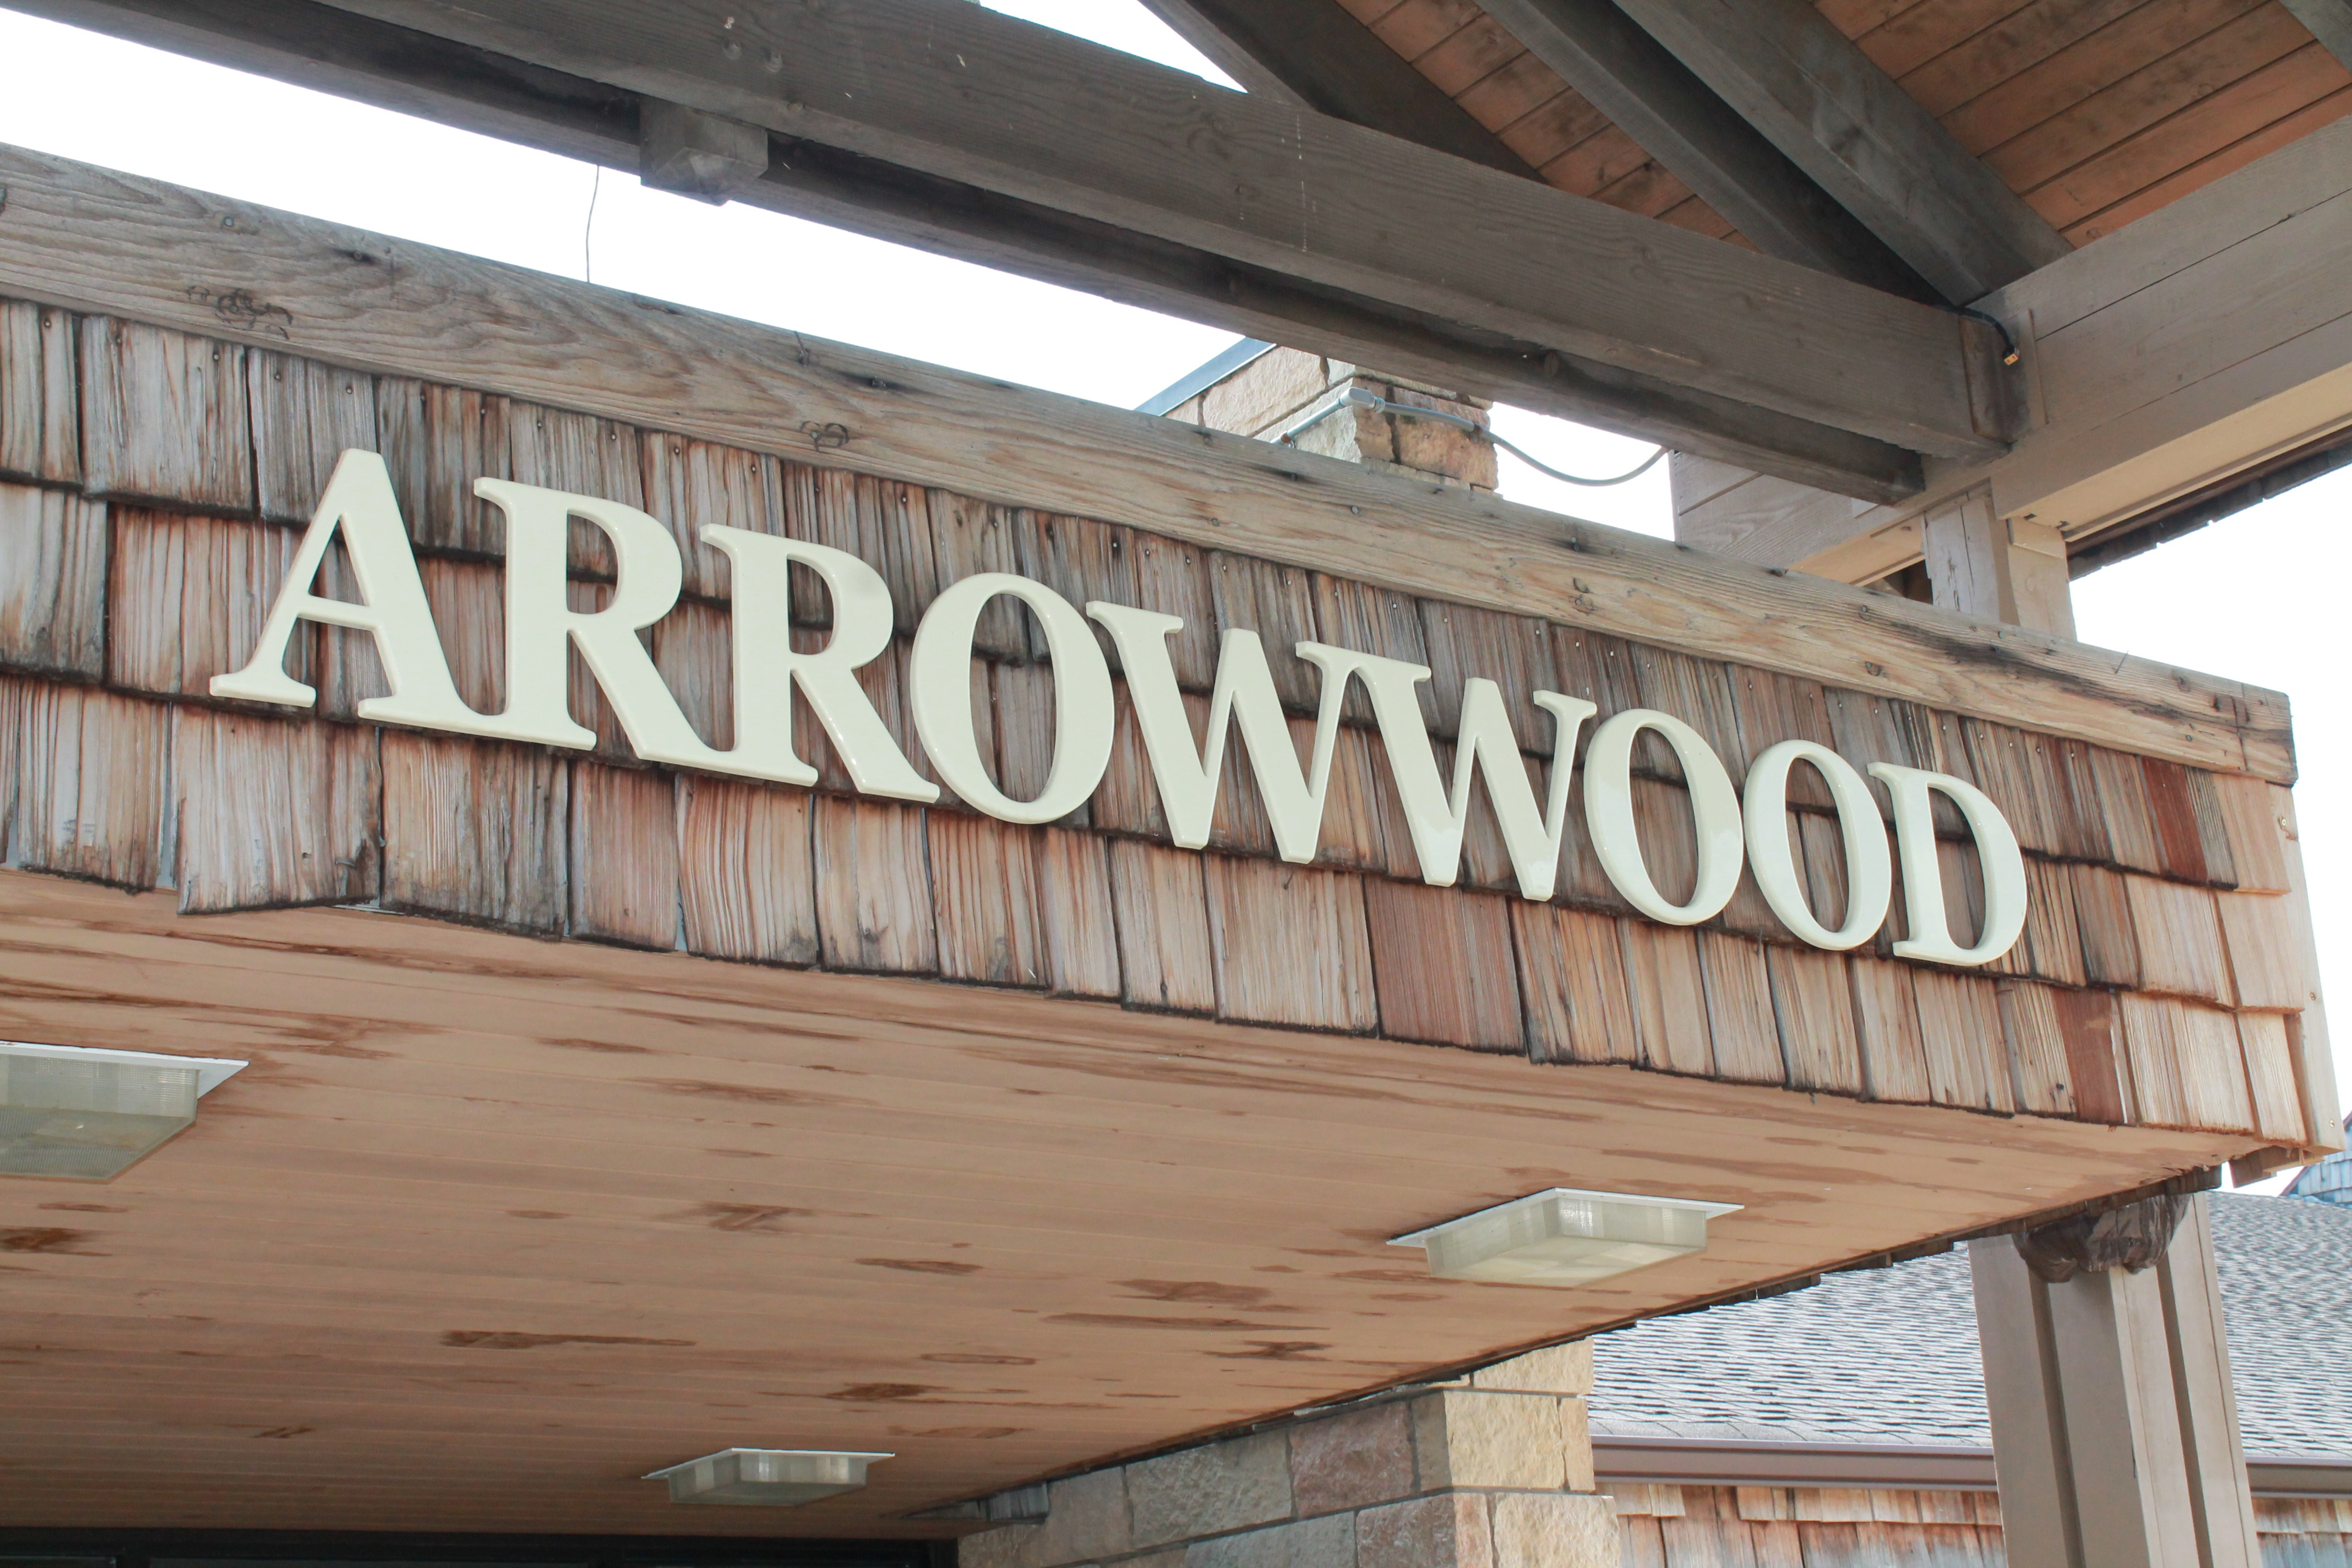 Picture of the entrance to Arrowwood Resort